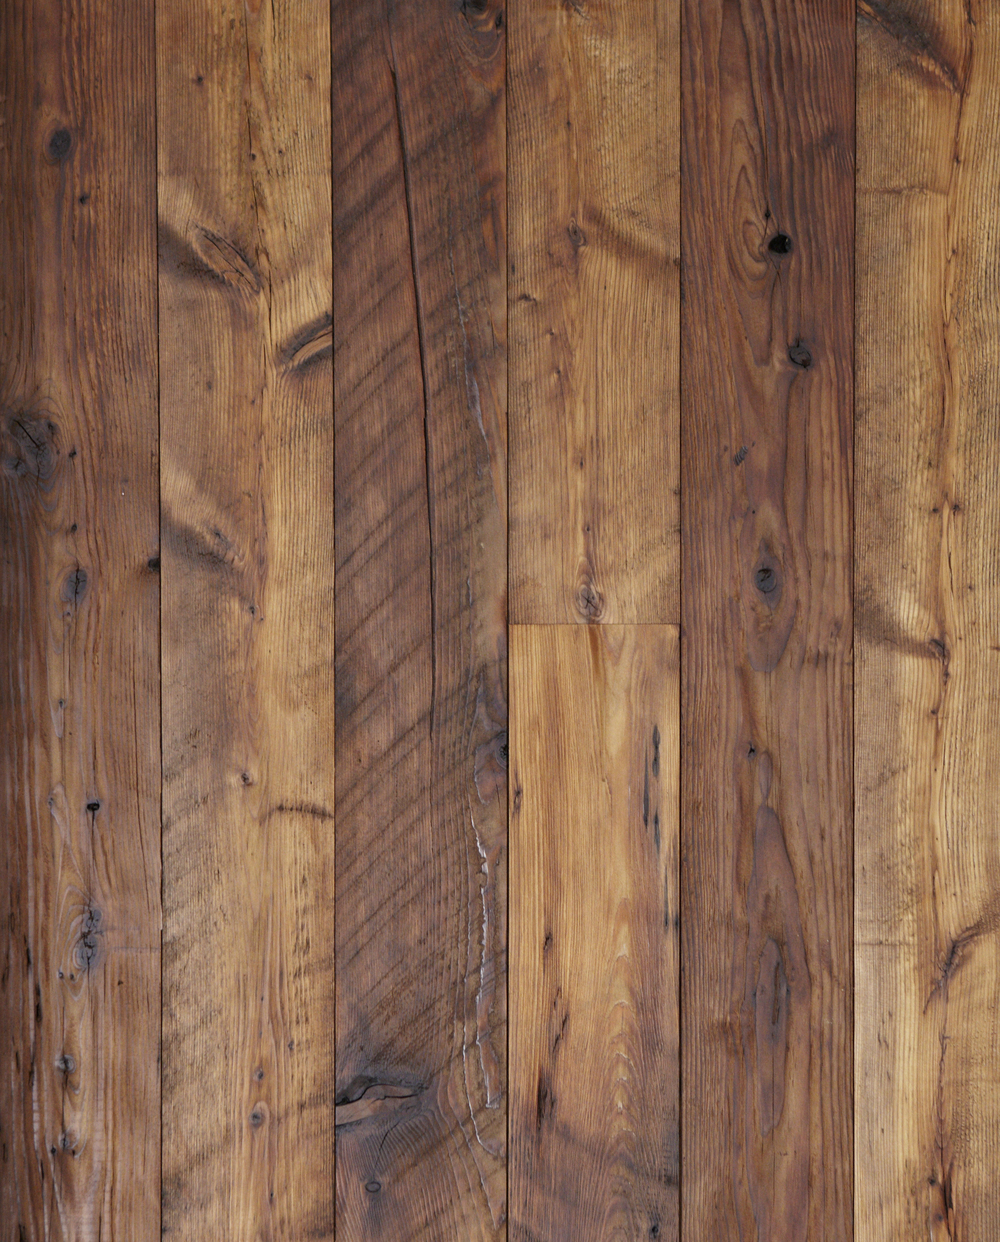 Reclaimed Hemlock Softwood Flooring [Mushroom Wood]